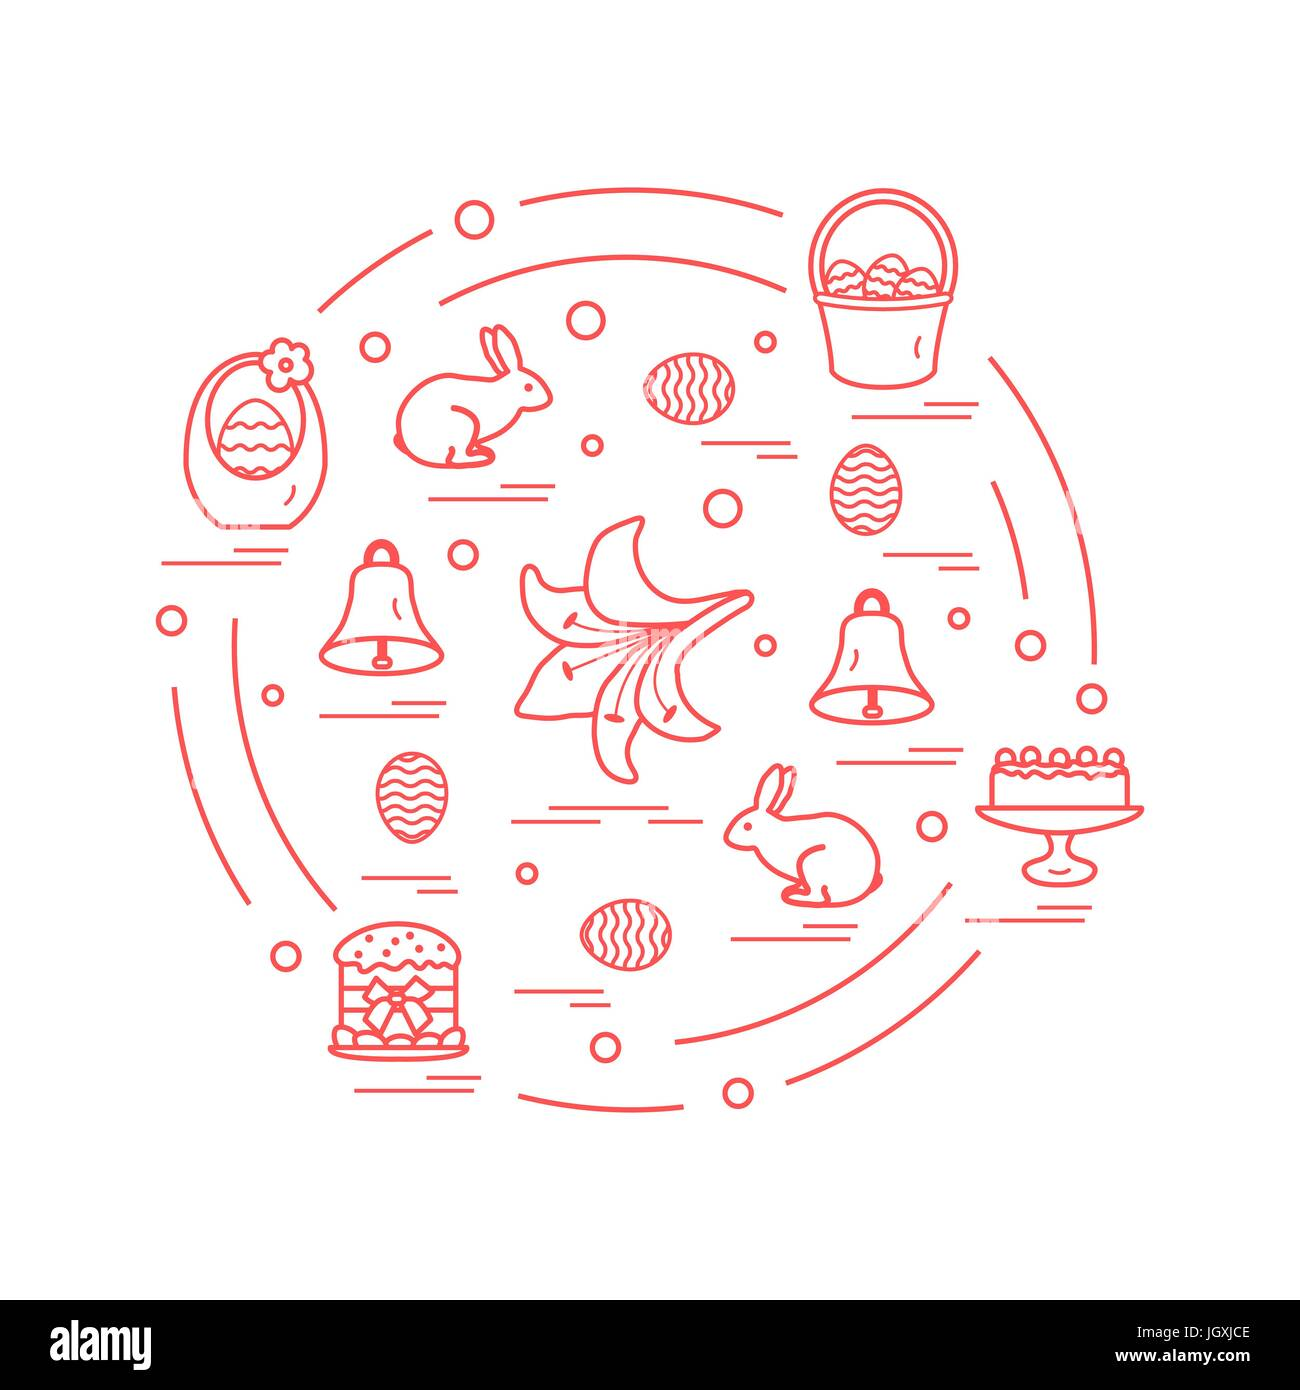 Cute vector illustration with different symbols for easter cute vector illustration with different symbols for easter arranged in a circle including icons of simnel cake lily baskets eggs and other design buycottarizona